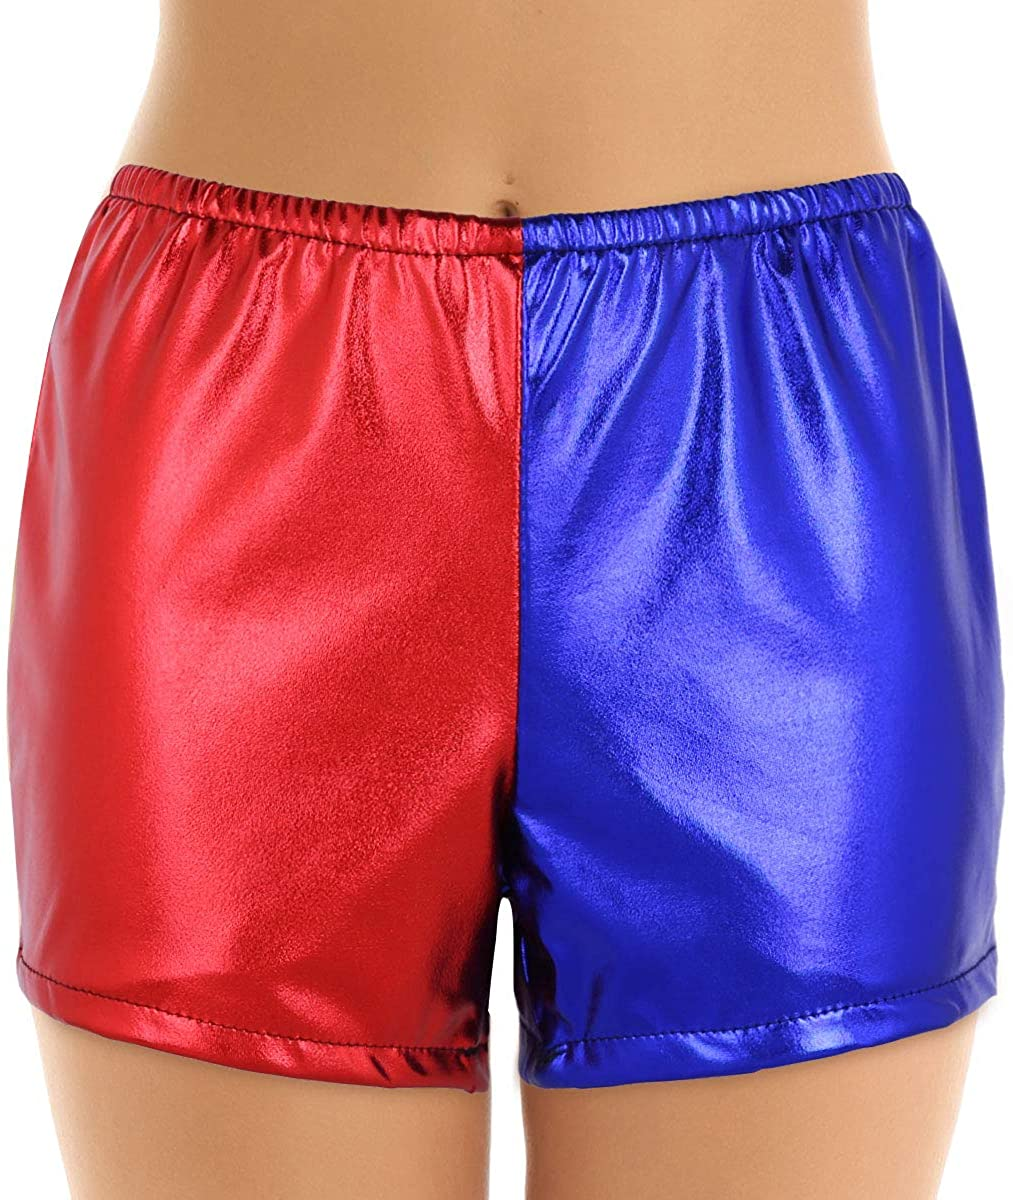 ACSUSS Womens Shiny Metallic Leather Cosplay Costume Colorblock Booty Shorts Underpants